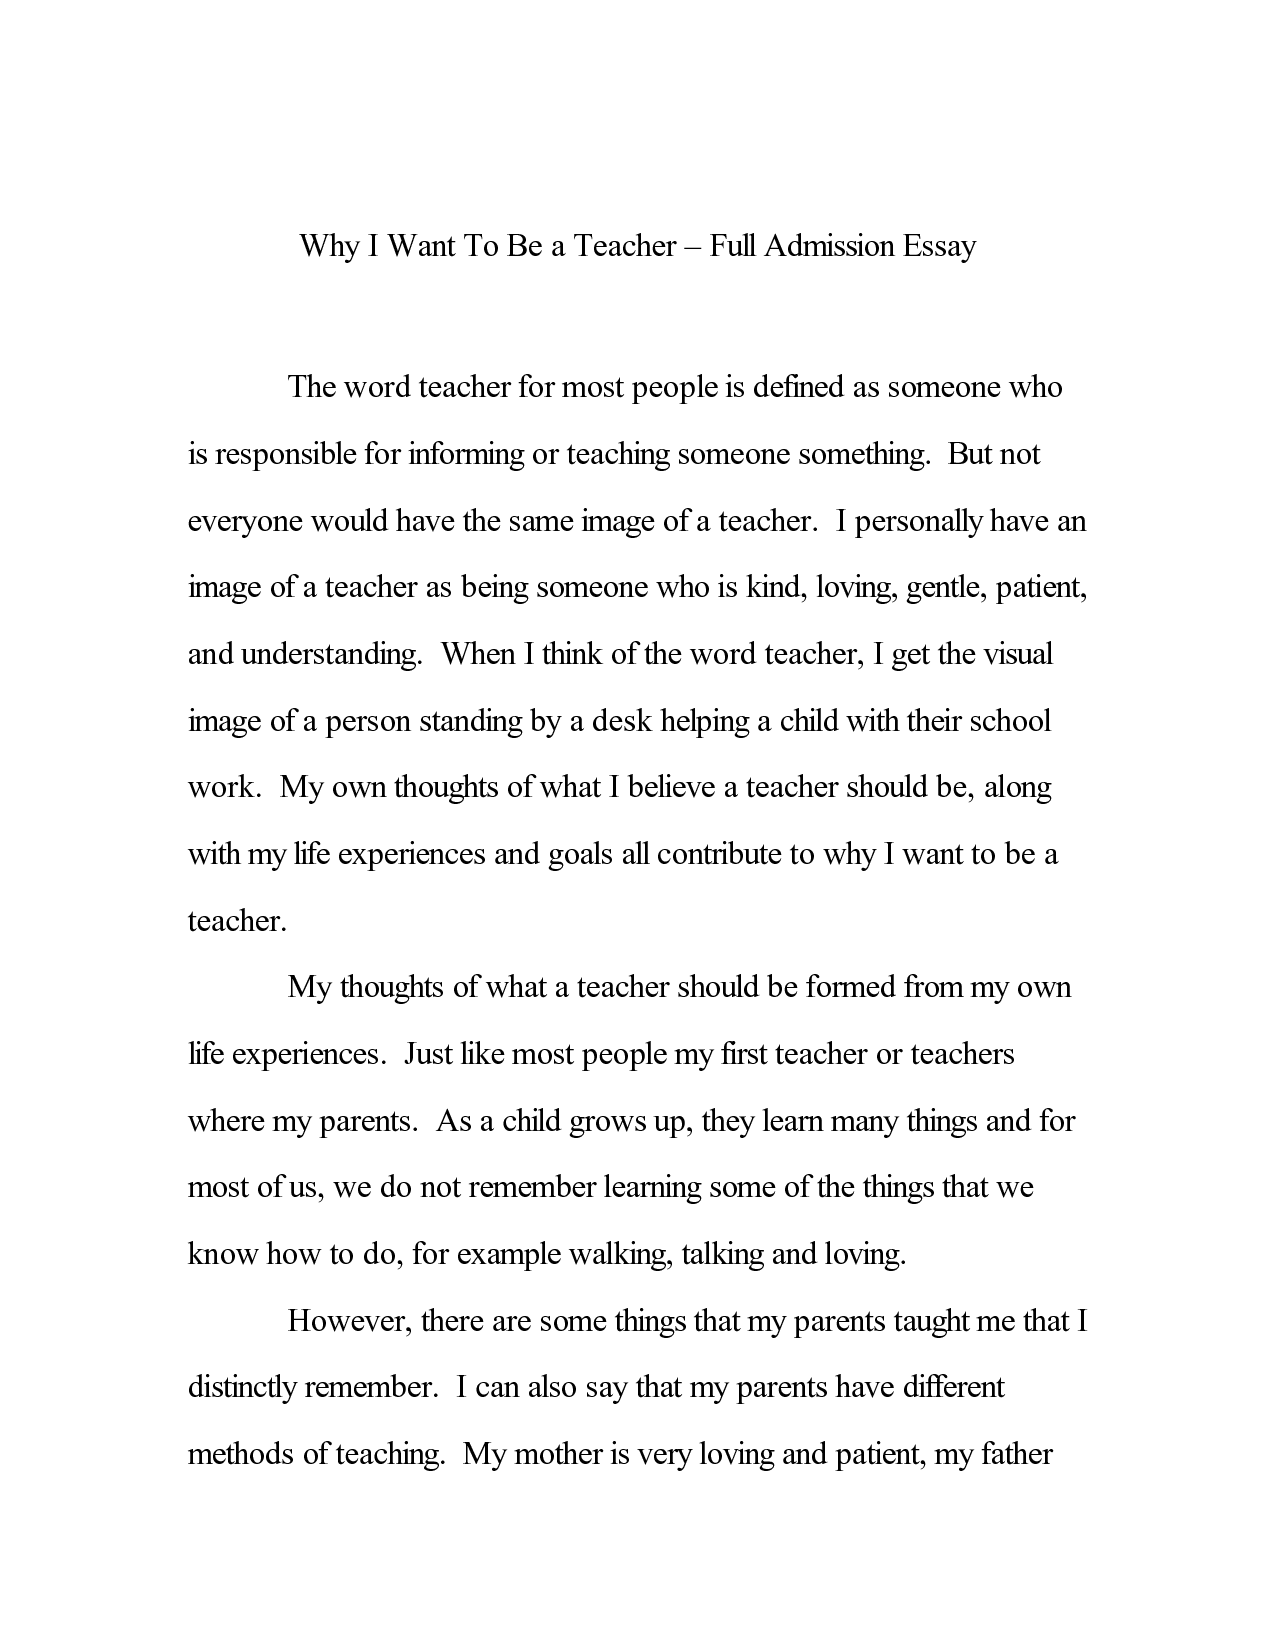 Writing an essay for university application